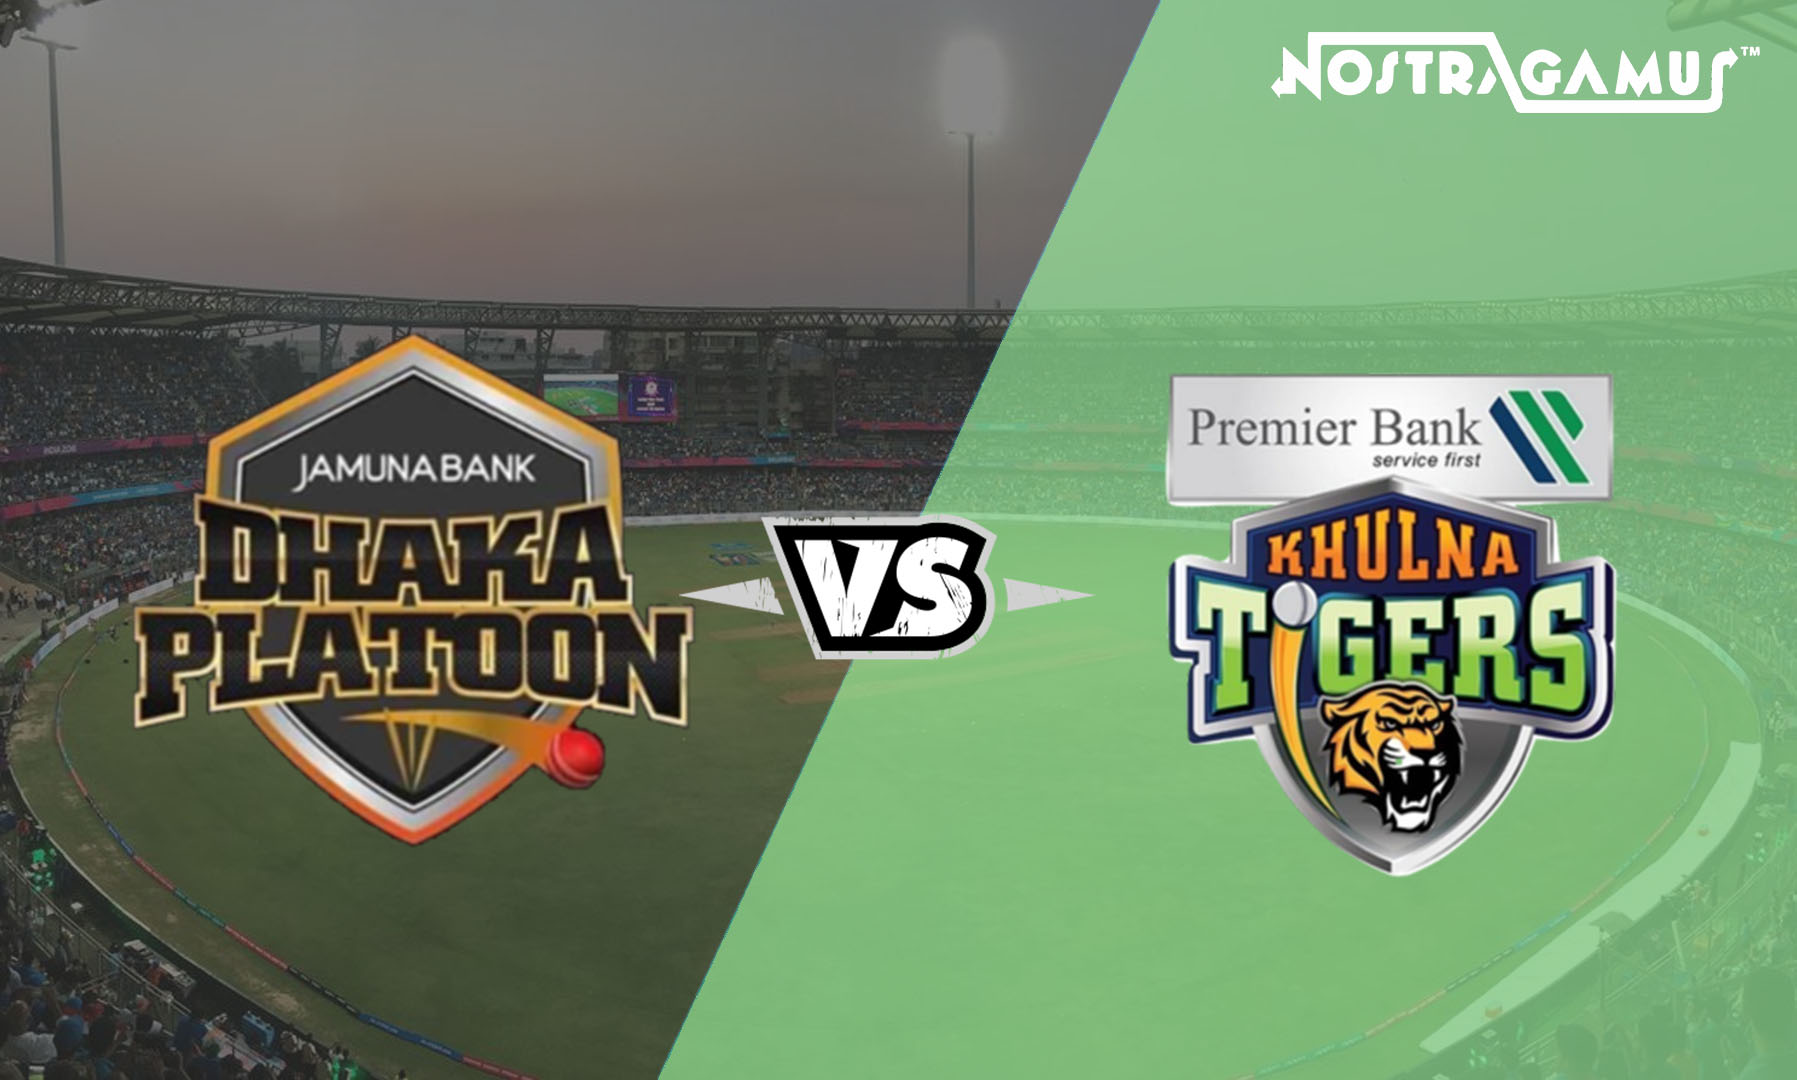 BPL 2019 Match Prediction: Dhaka Platoon vs Khulna Tigers